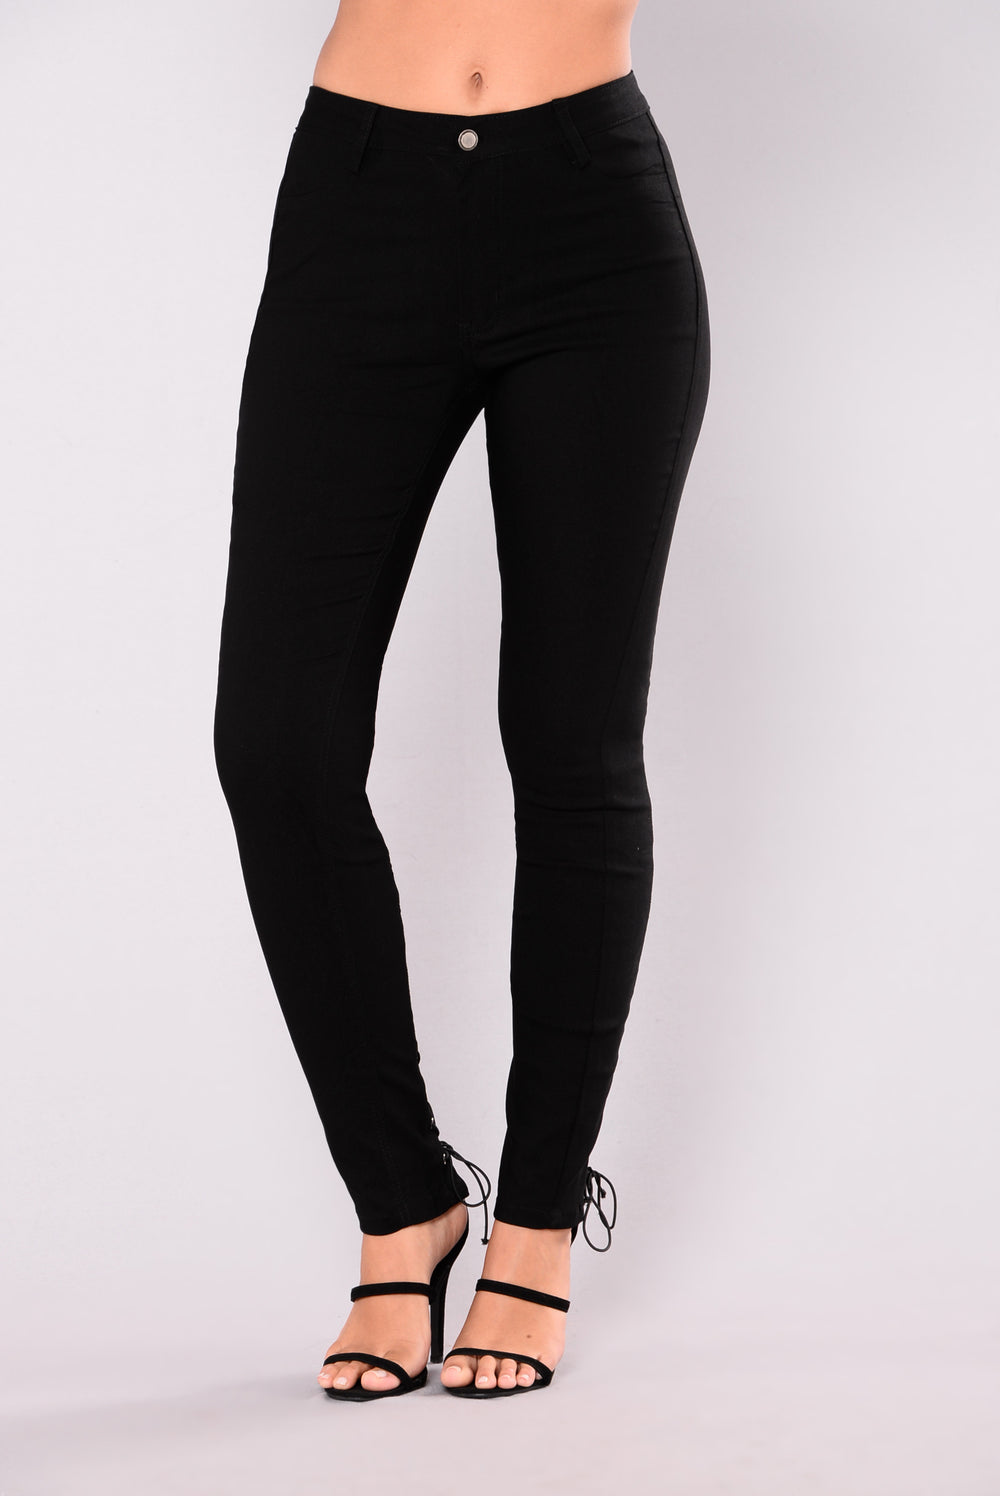 Bentley Lace Up Pants - Black